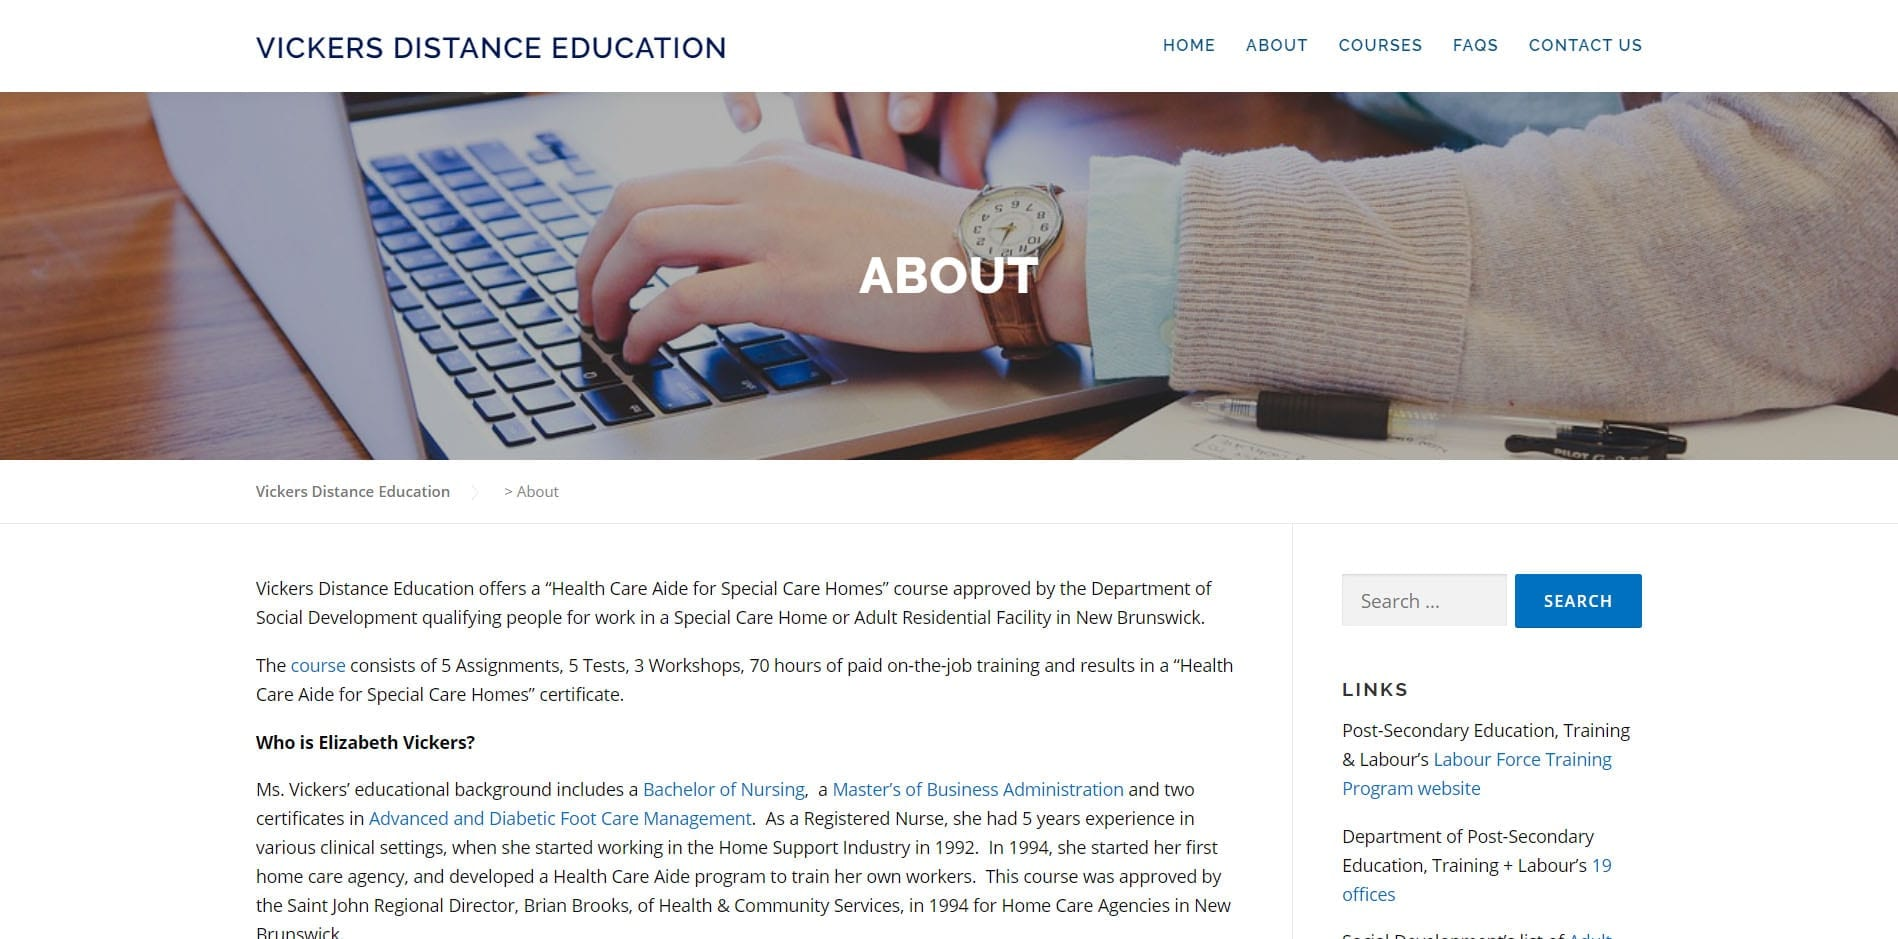 Vickers Distance Educaiton About - Supported by Eagle Digital Media